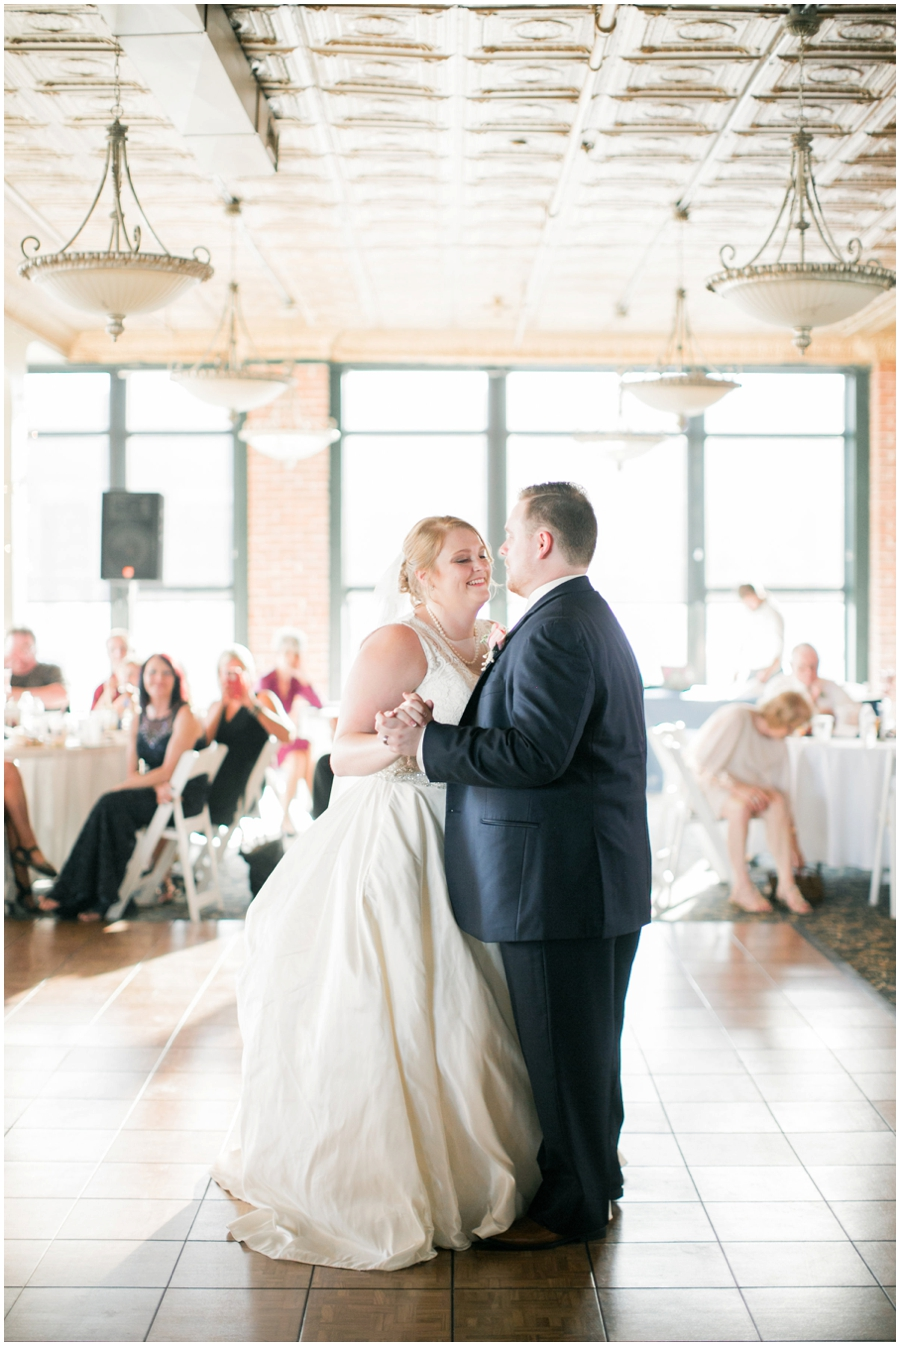 Joplin Missouri Wedding at the Ramsey - Jordan Brittley Photography_0029.jpg